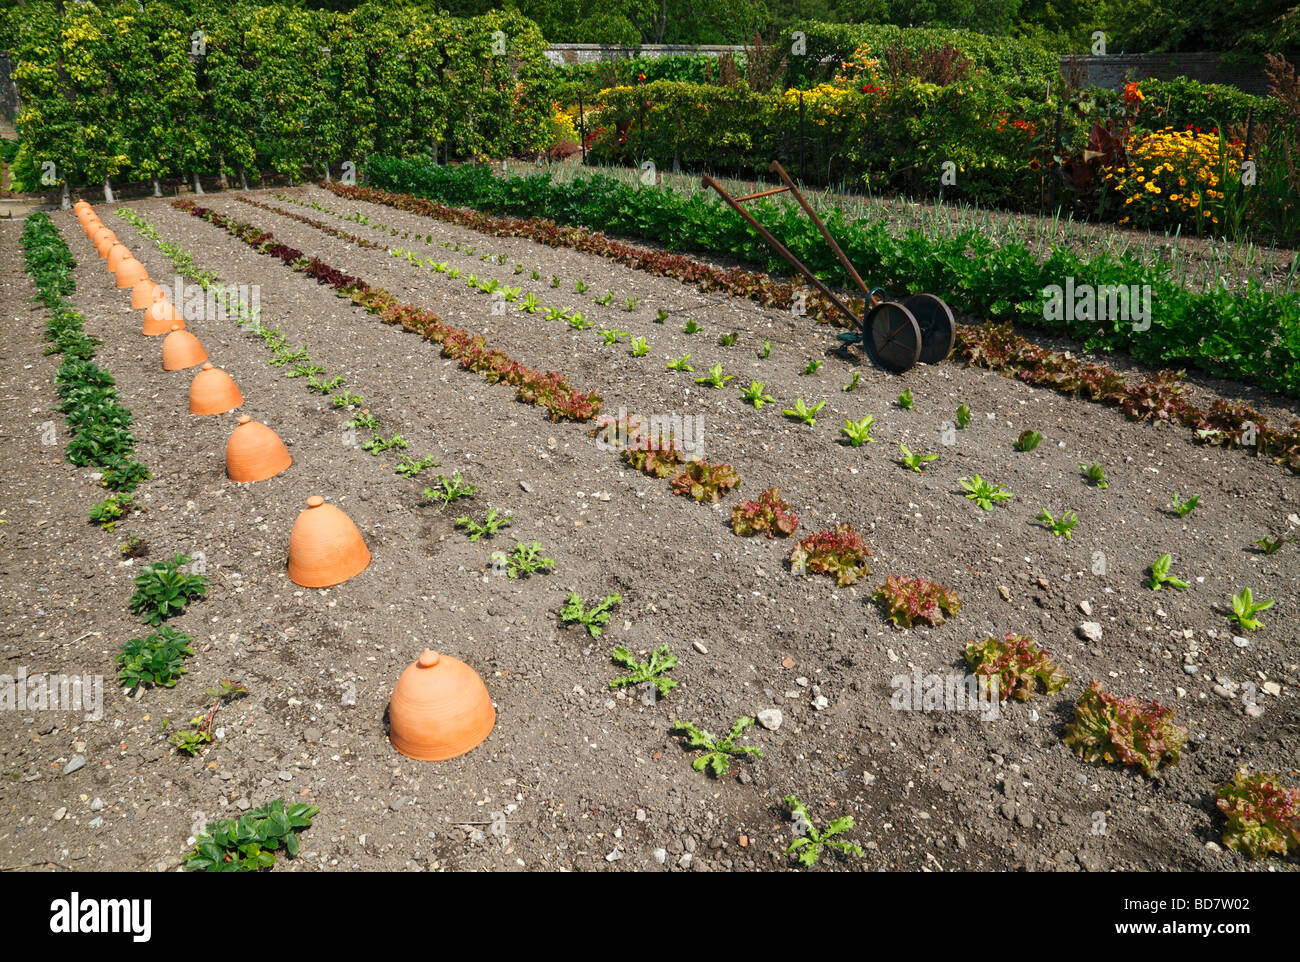 Neat vegetable garden. England, UK. - Stock Image